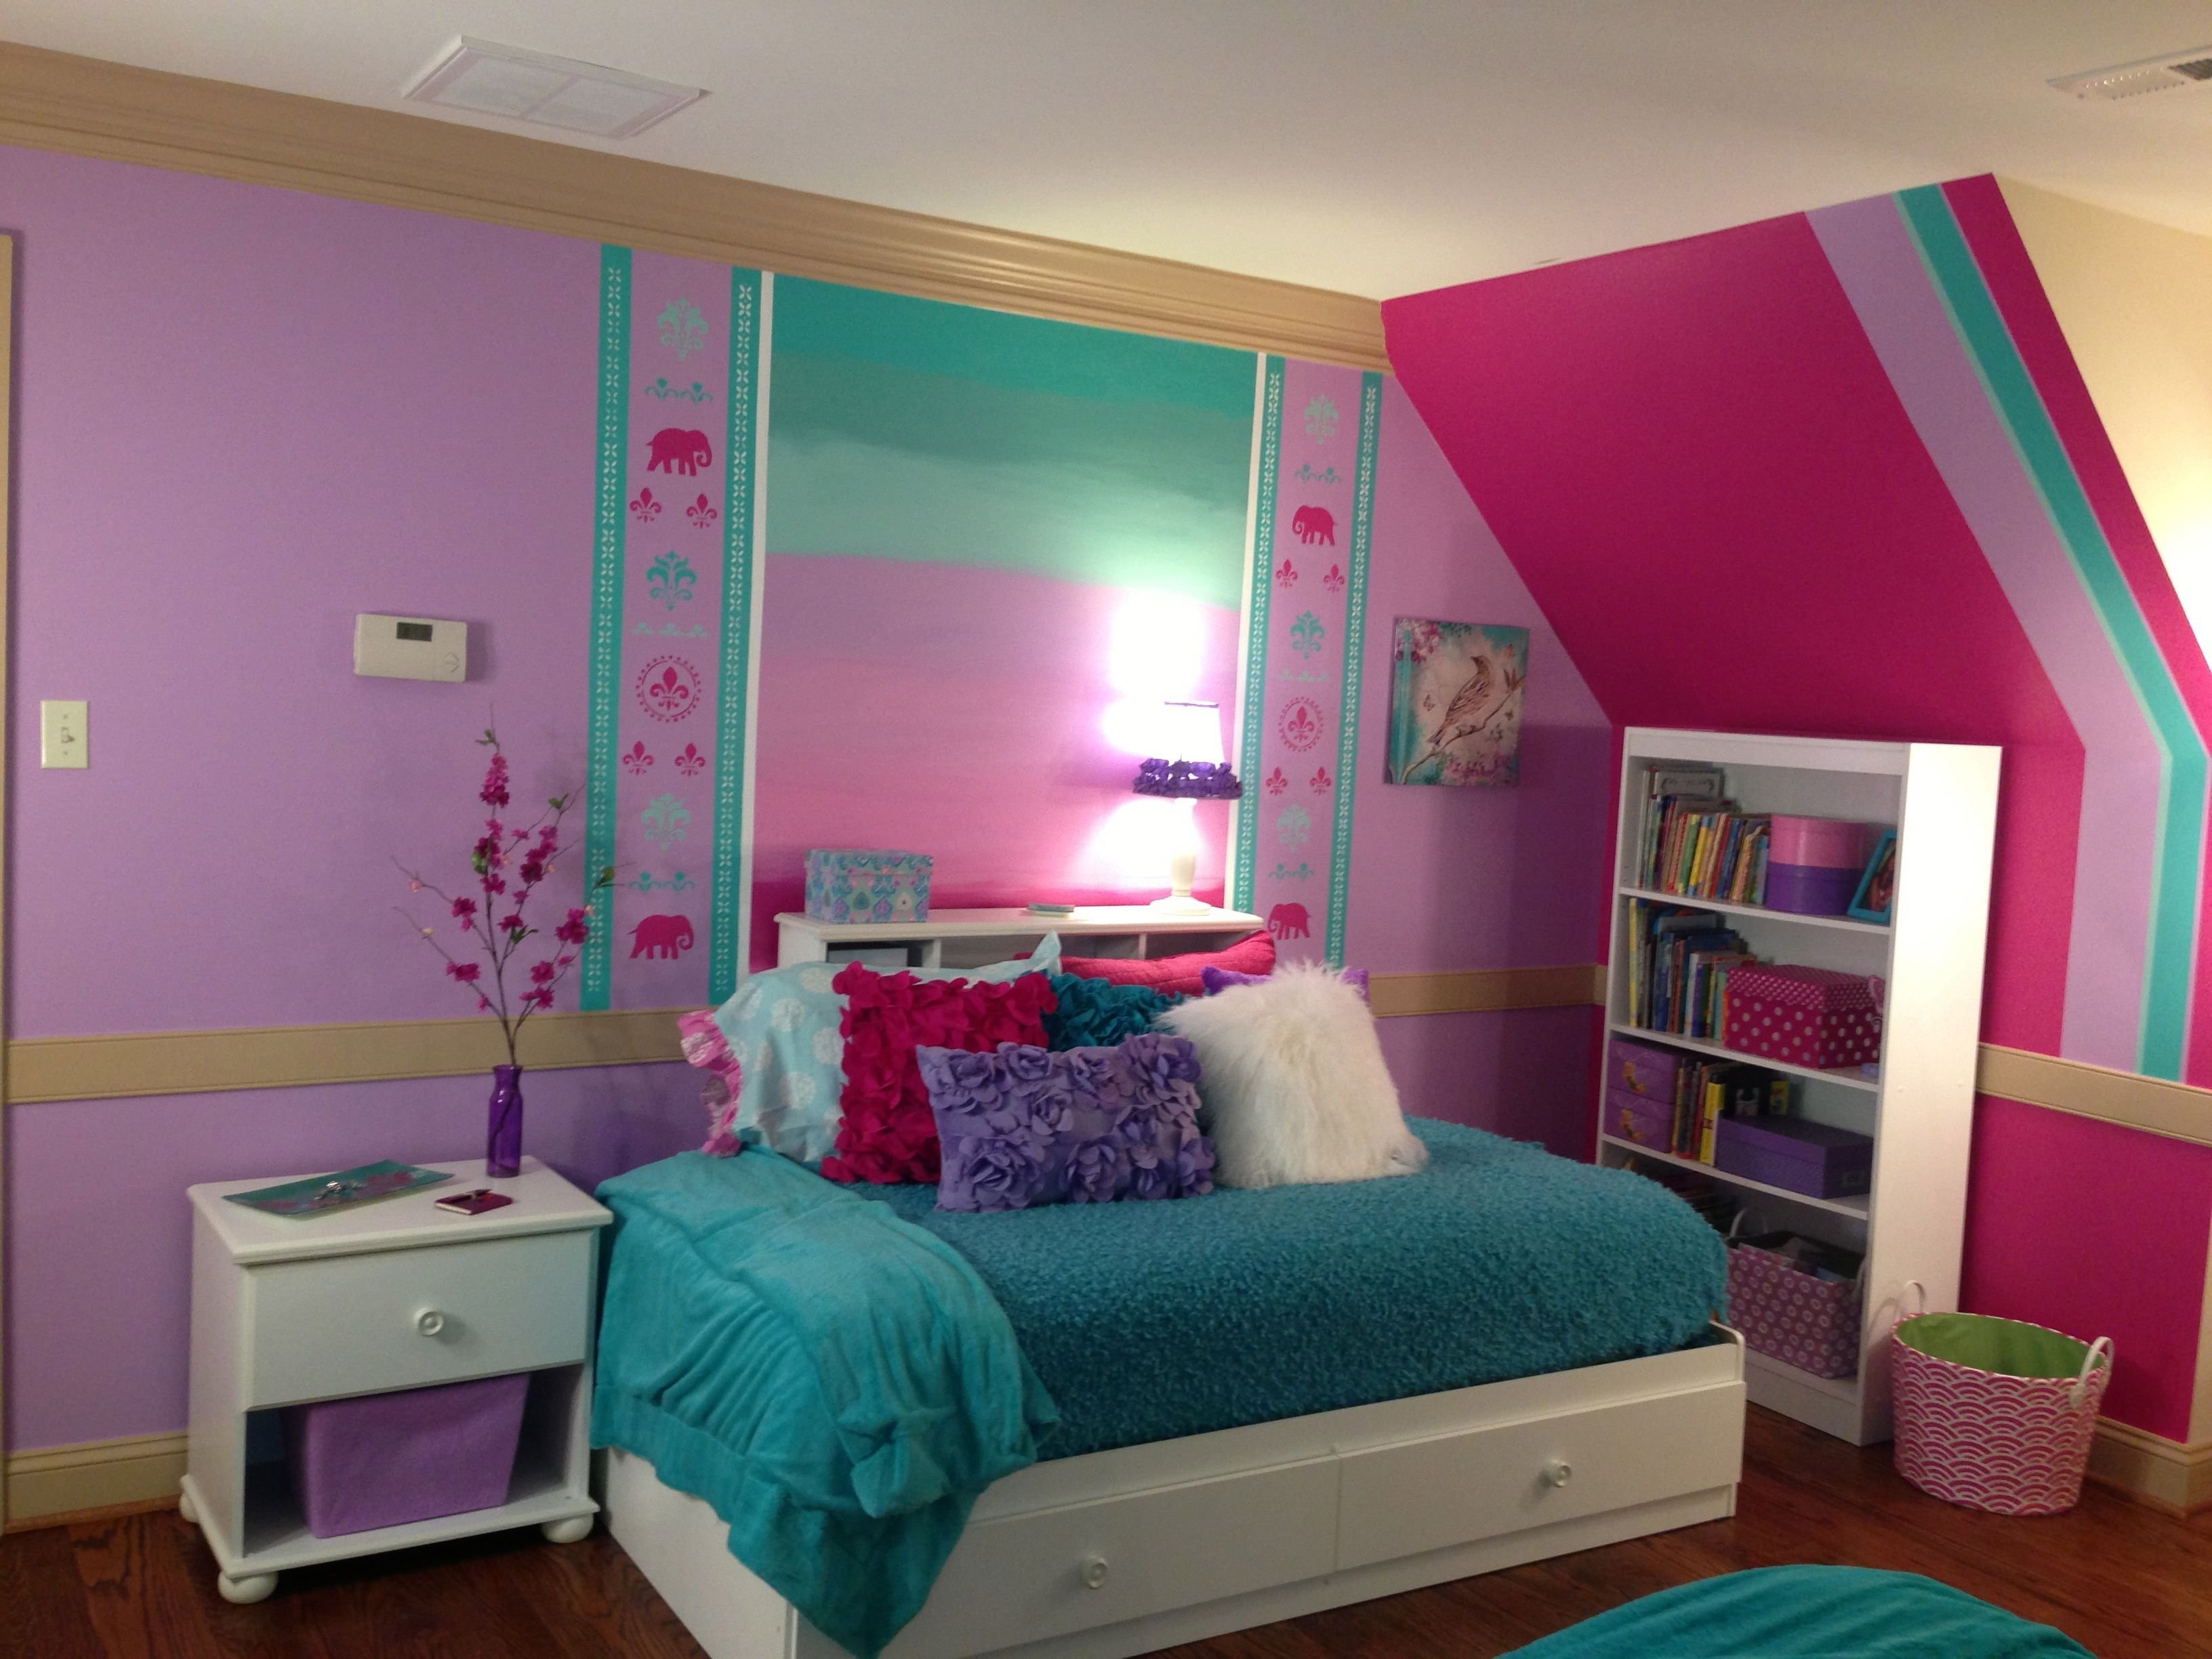 Best Making The Most Of Space With A Twin Bed 7 Year Old Wanted Pink Elephants On Wall Little With Pictures